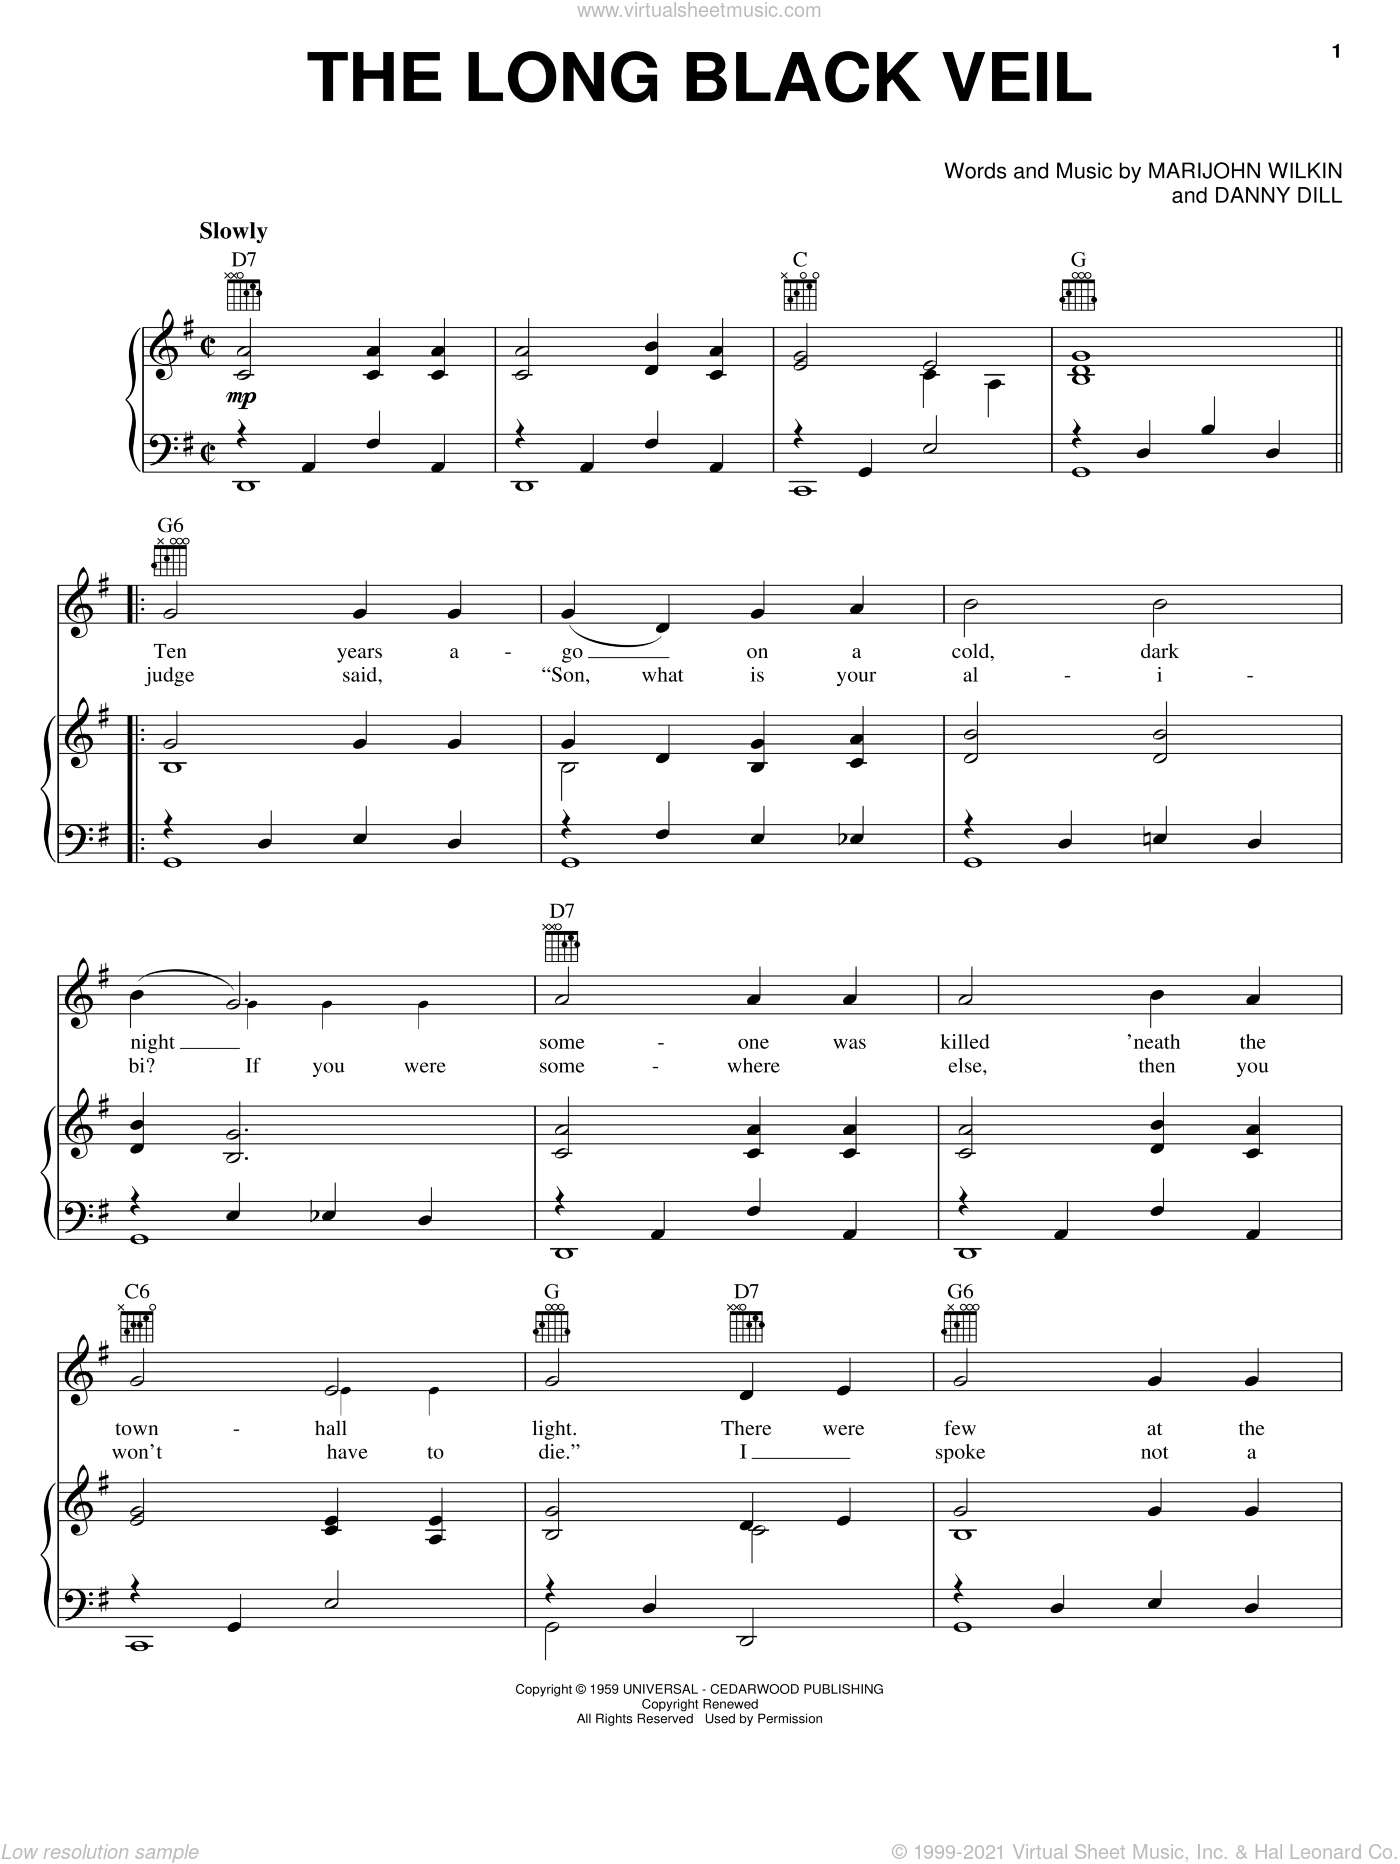 The Long Black Veil sheet music for voice, piano or guitar by Marijohn Wilkin, Johnny Cash, Lefty Frizzell and Danny Dill. Score Image Preview.